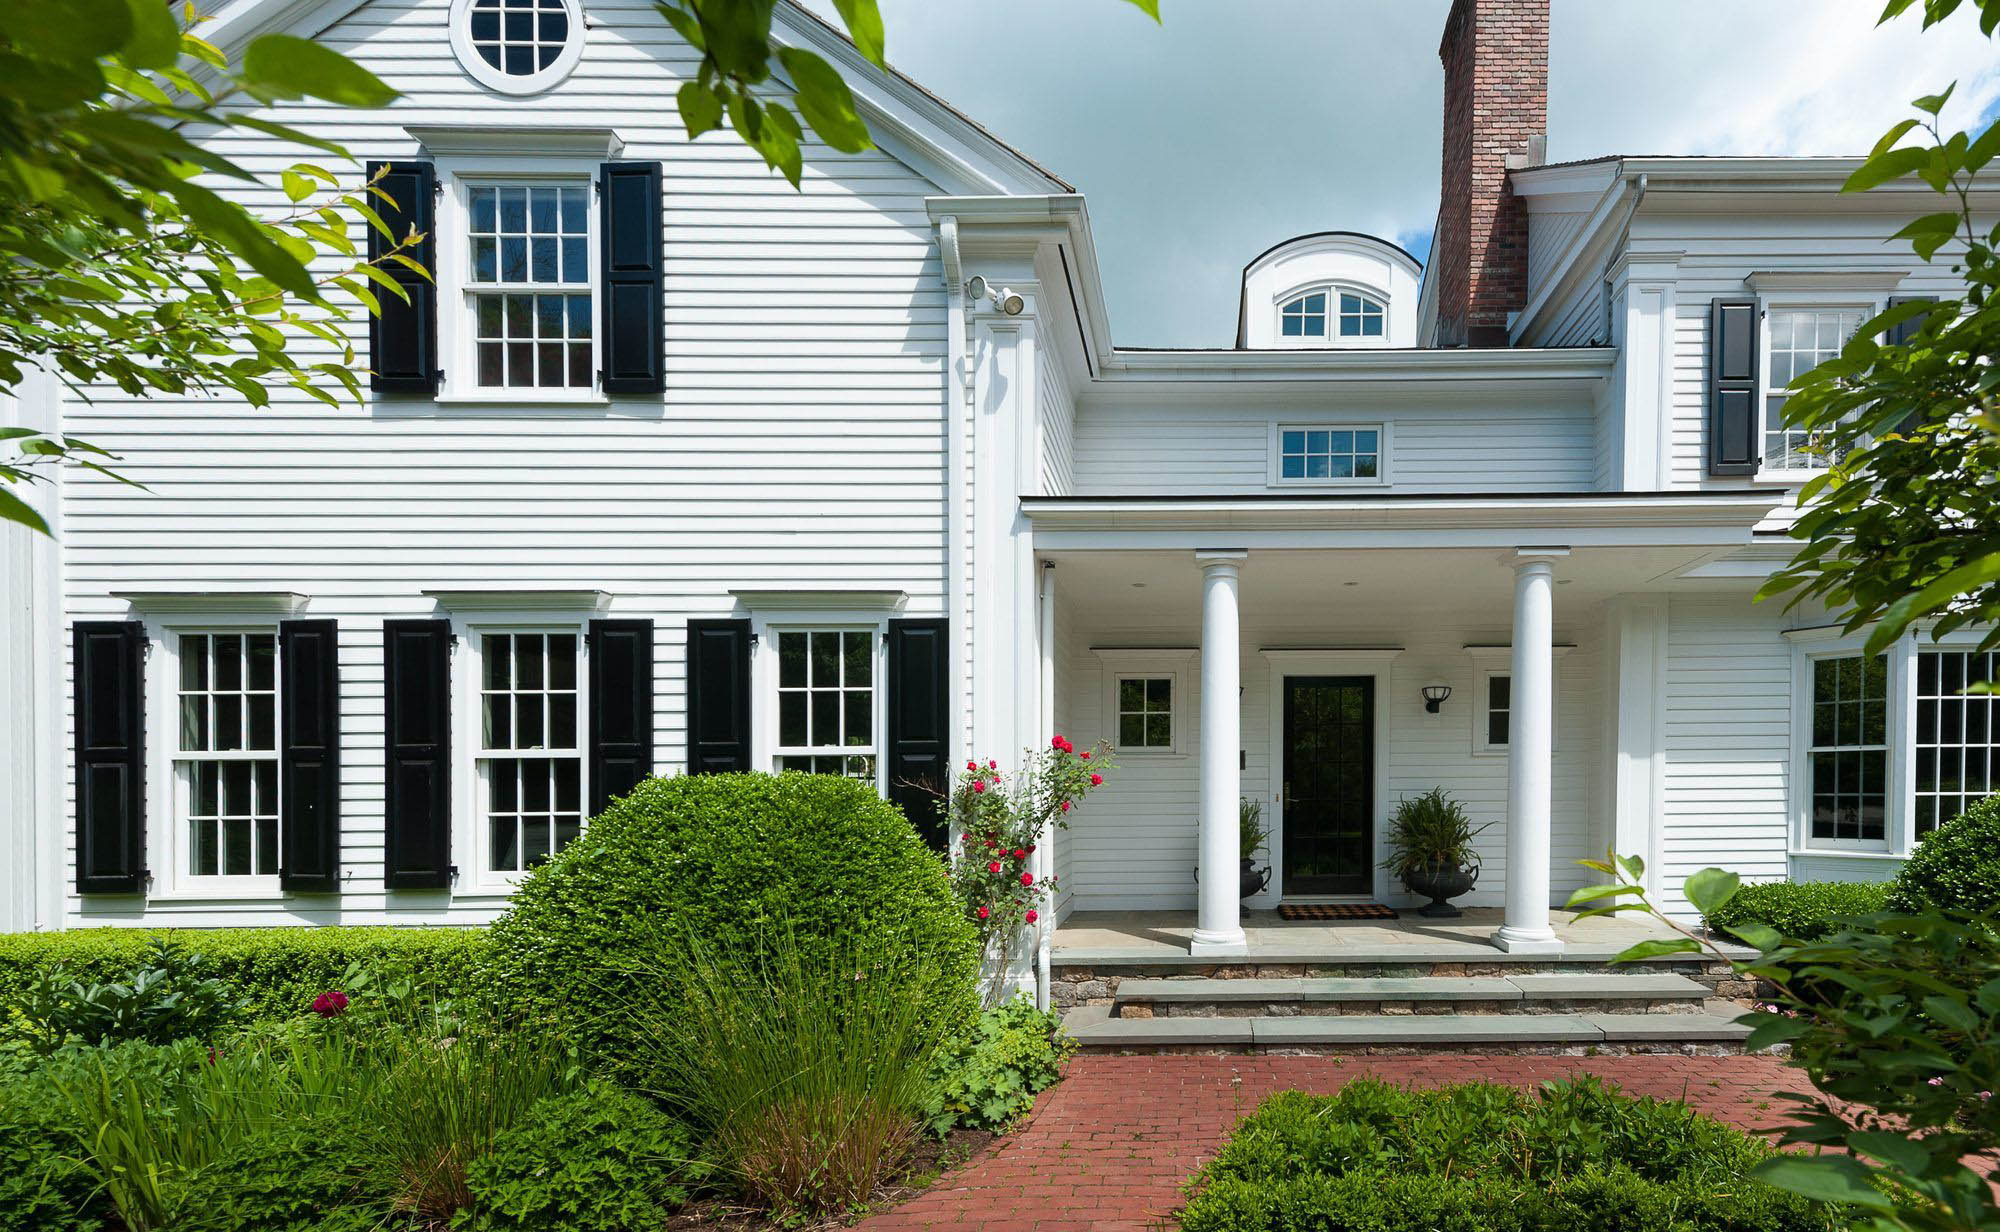 Modern Colonial home with white Azek soffit and fascia. White siding with black shutters.